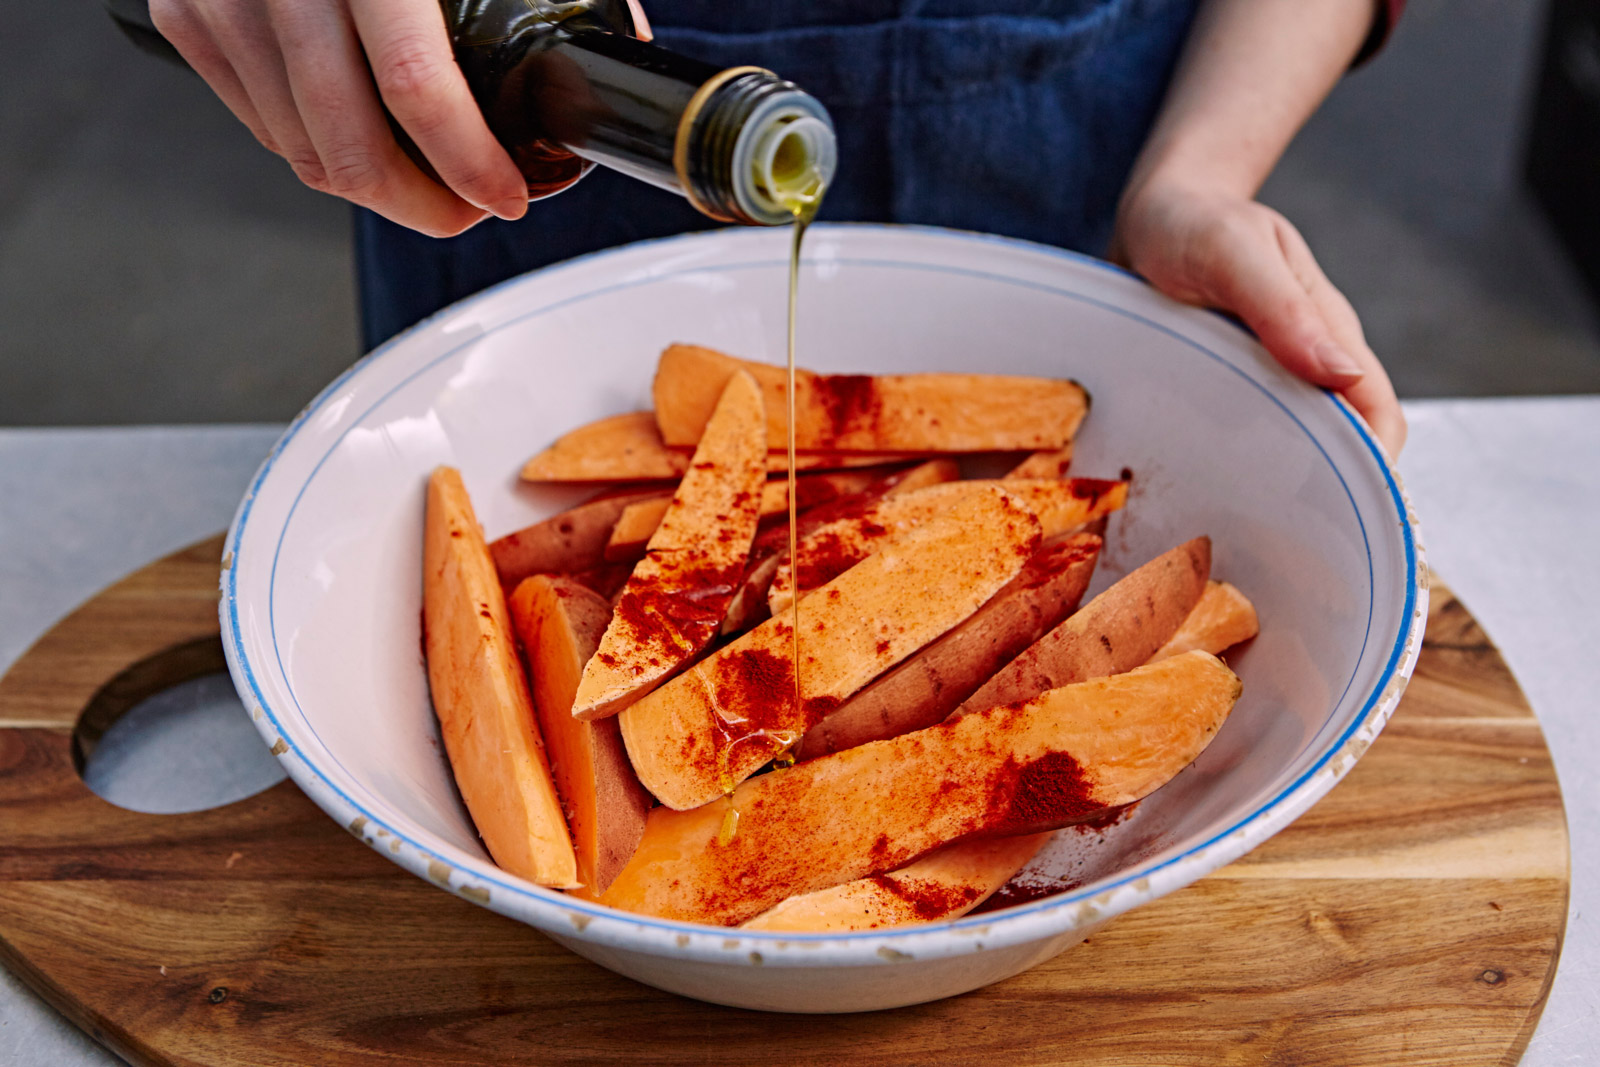 How to make sweet potato fries | Features | Jamie Oliver